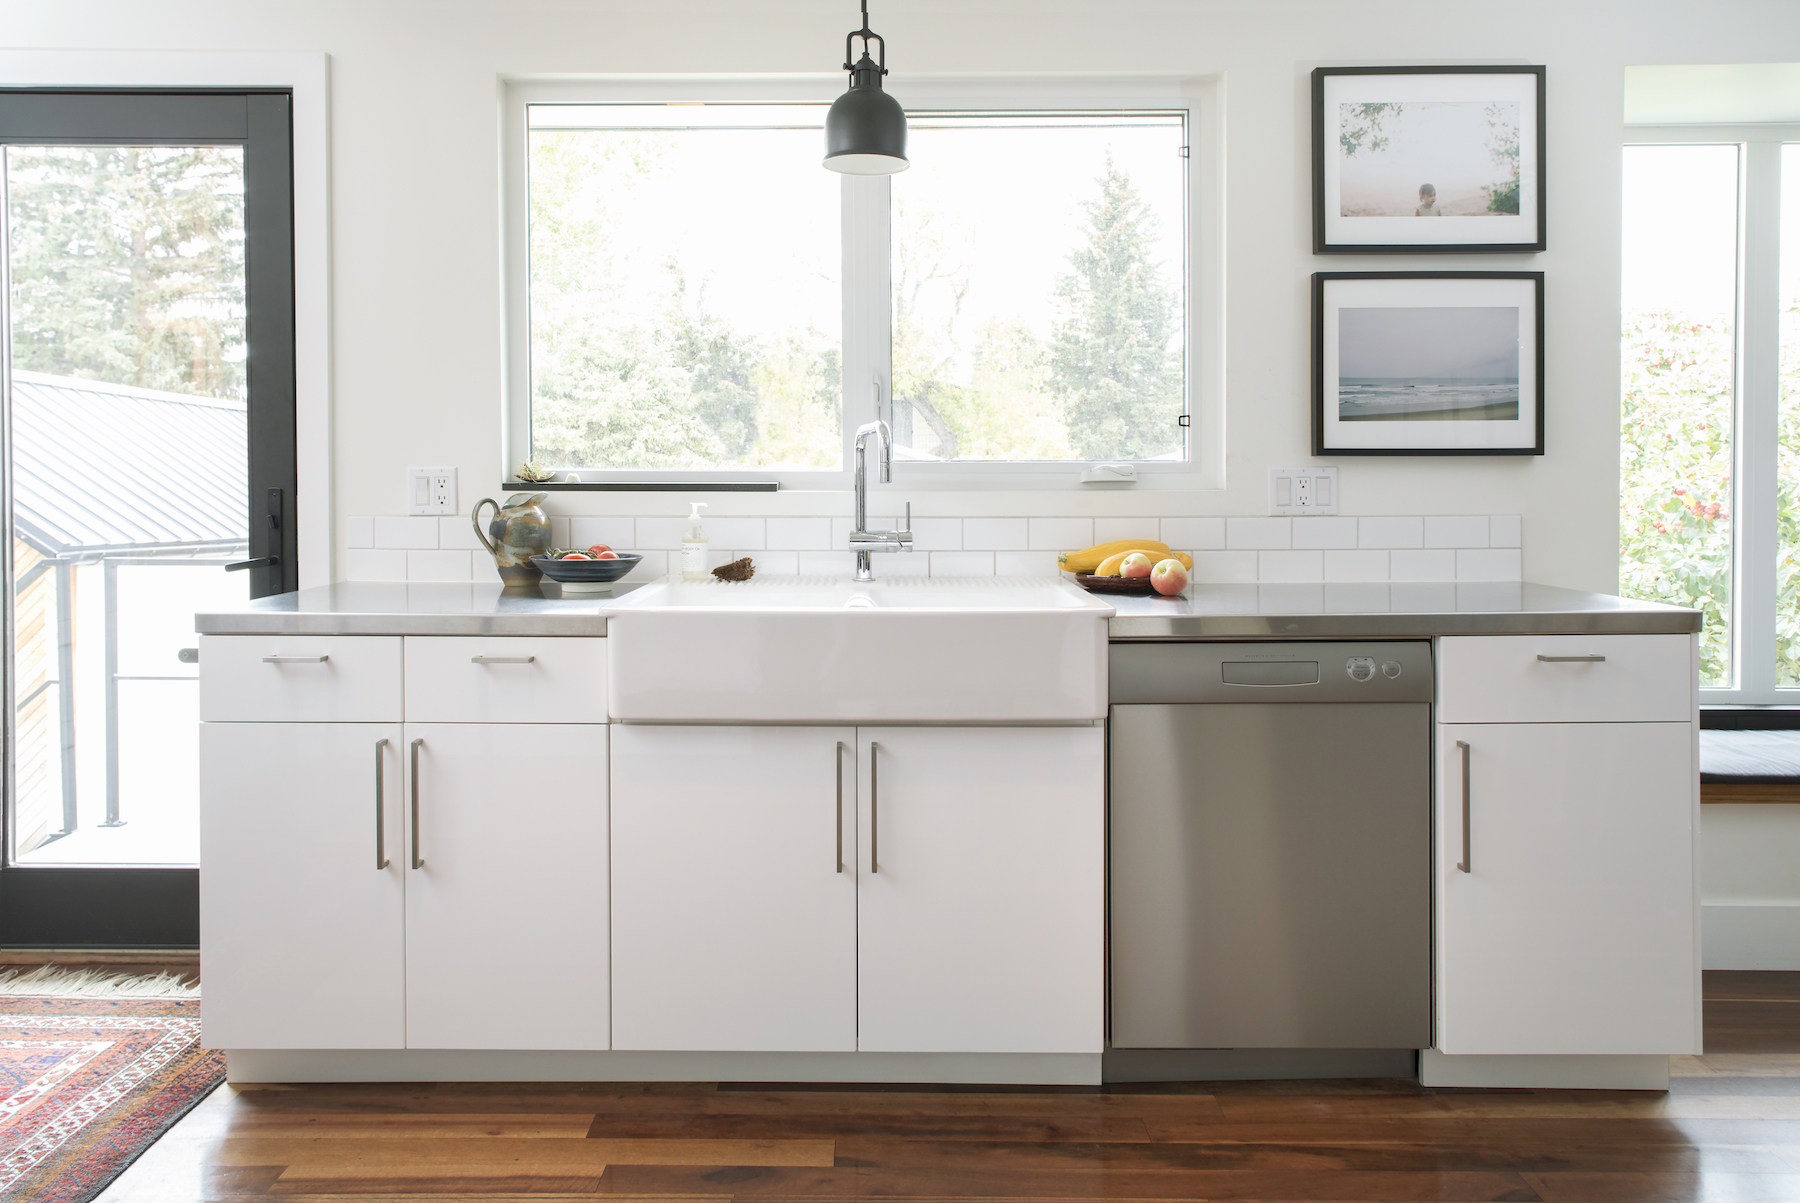 Things Ody Tells You About Getting A Farmhouse Sink Real Simple